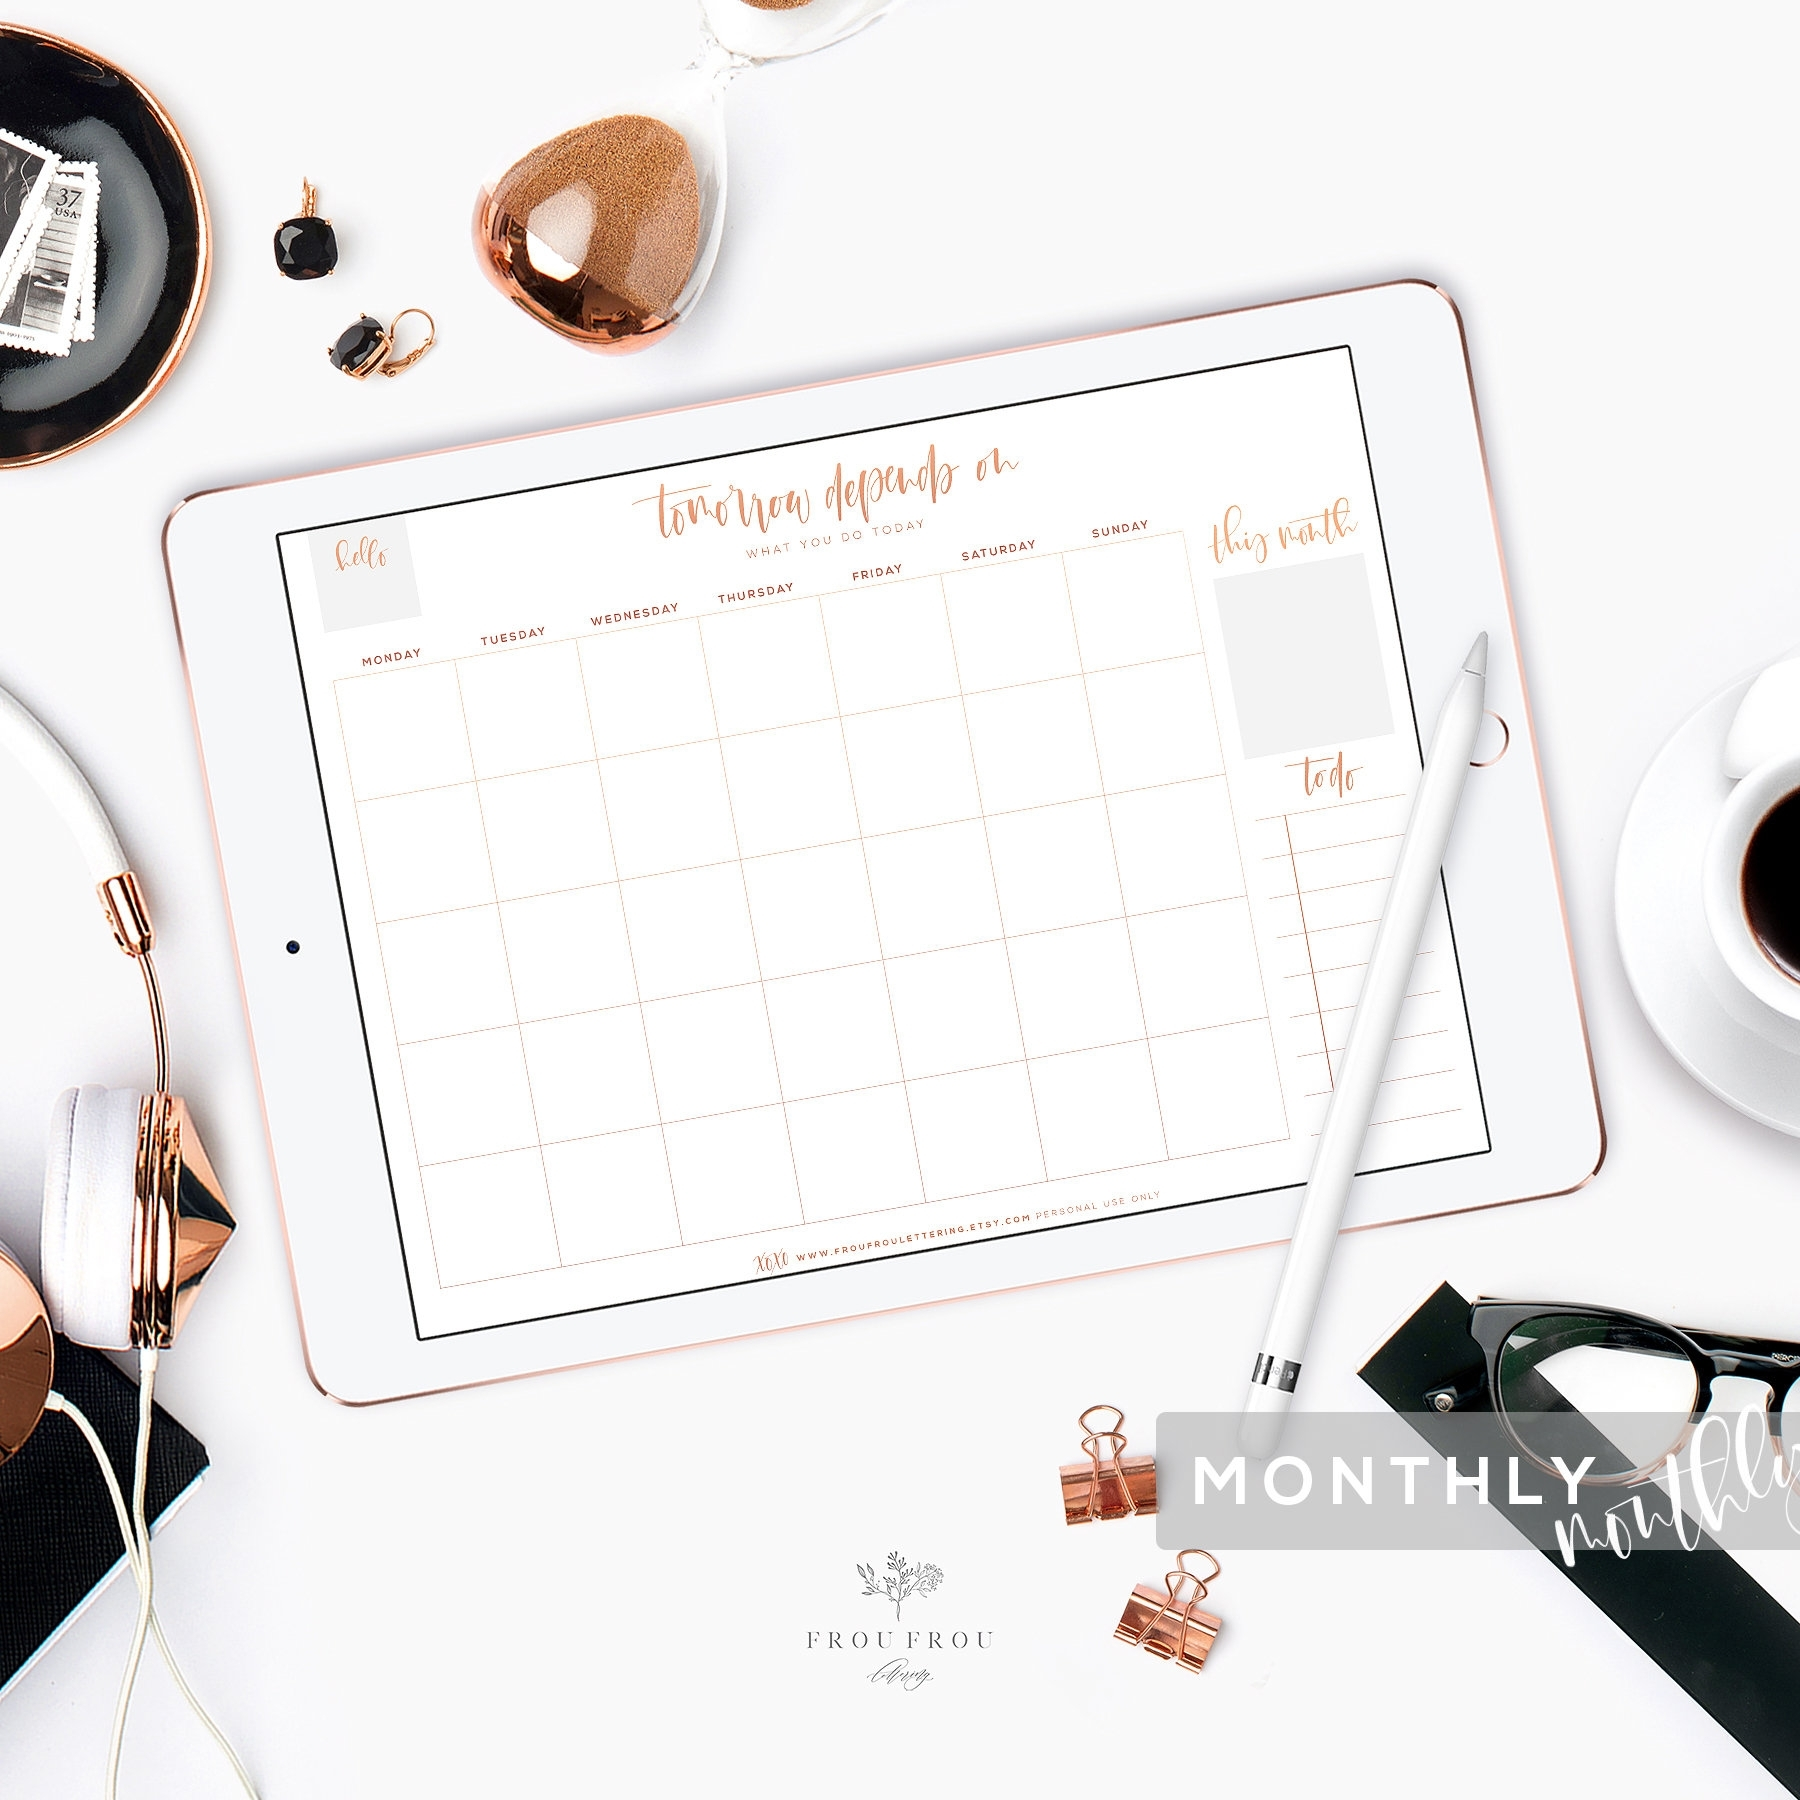 Monthly Planner Rose Gold Undated Calendar Ipad Pro Goodnotes Printable To  Do List Digital Organizer Month Daily Weekly Inserts Dashboard